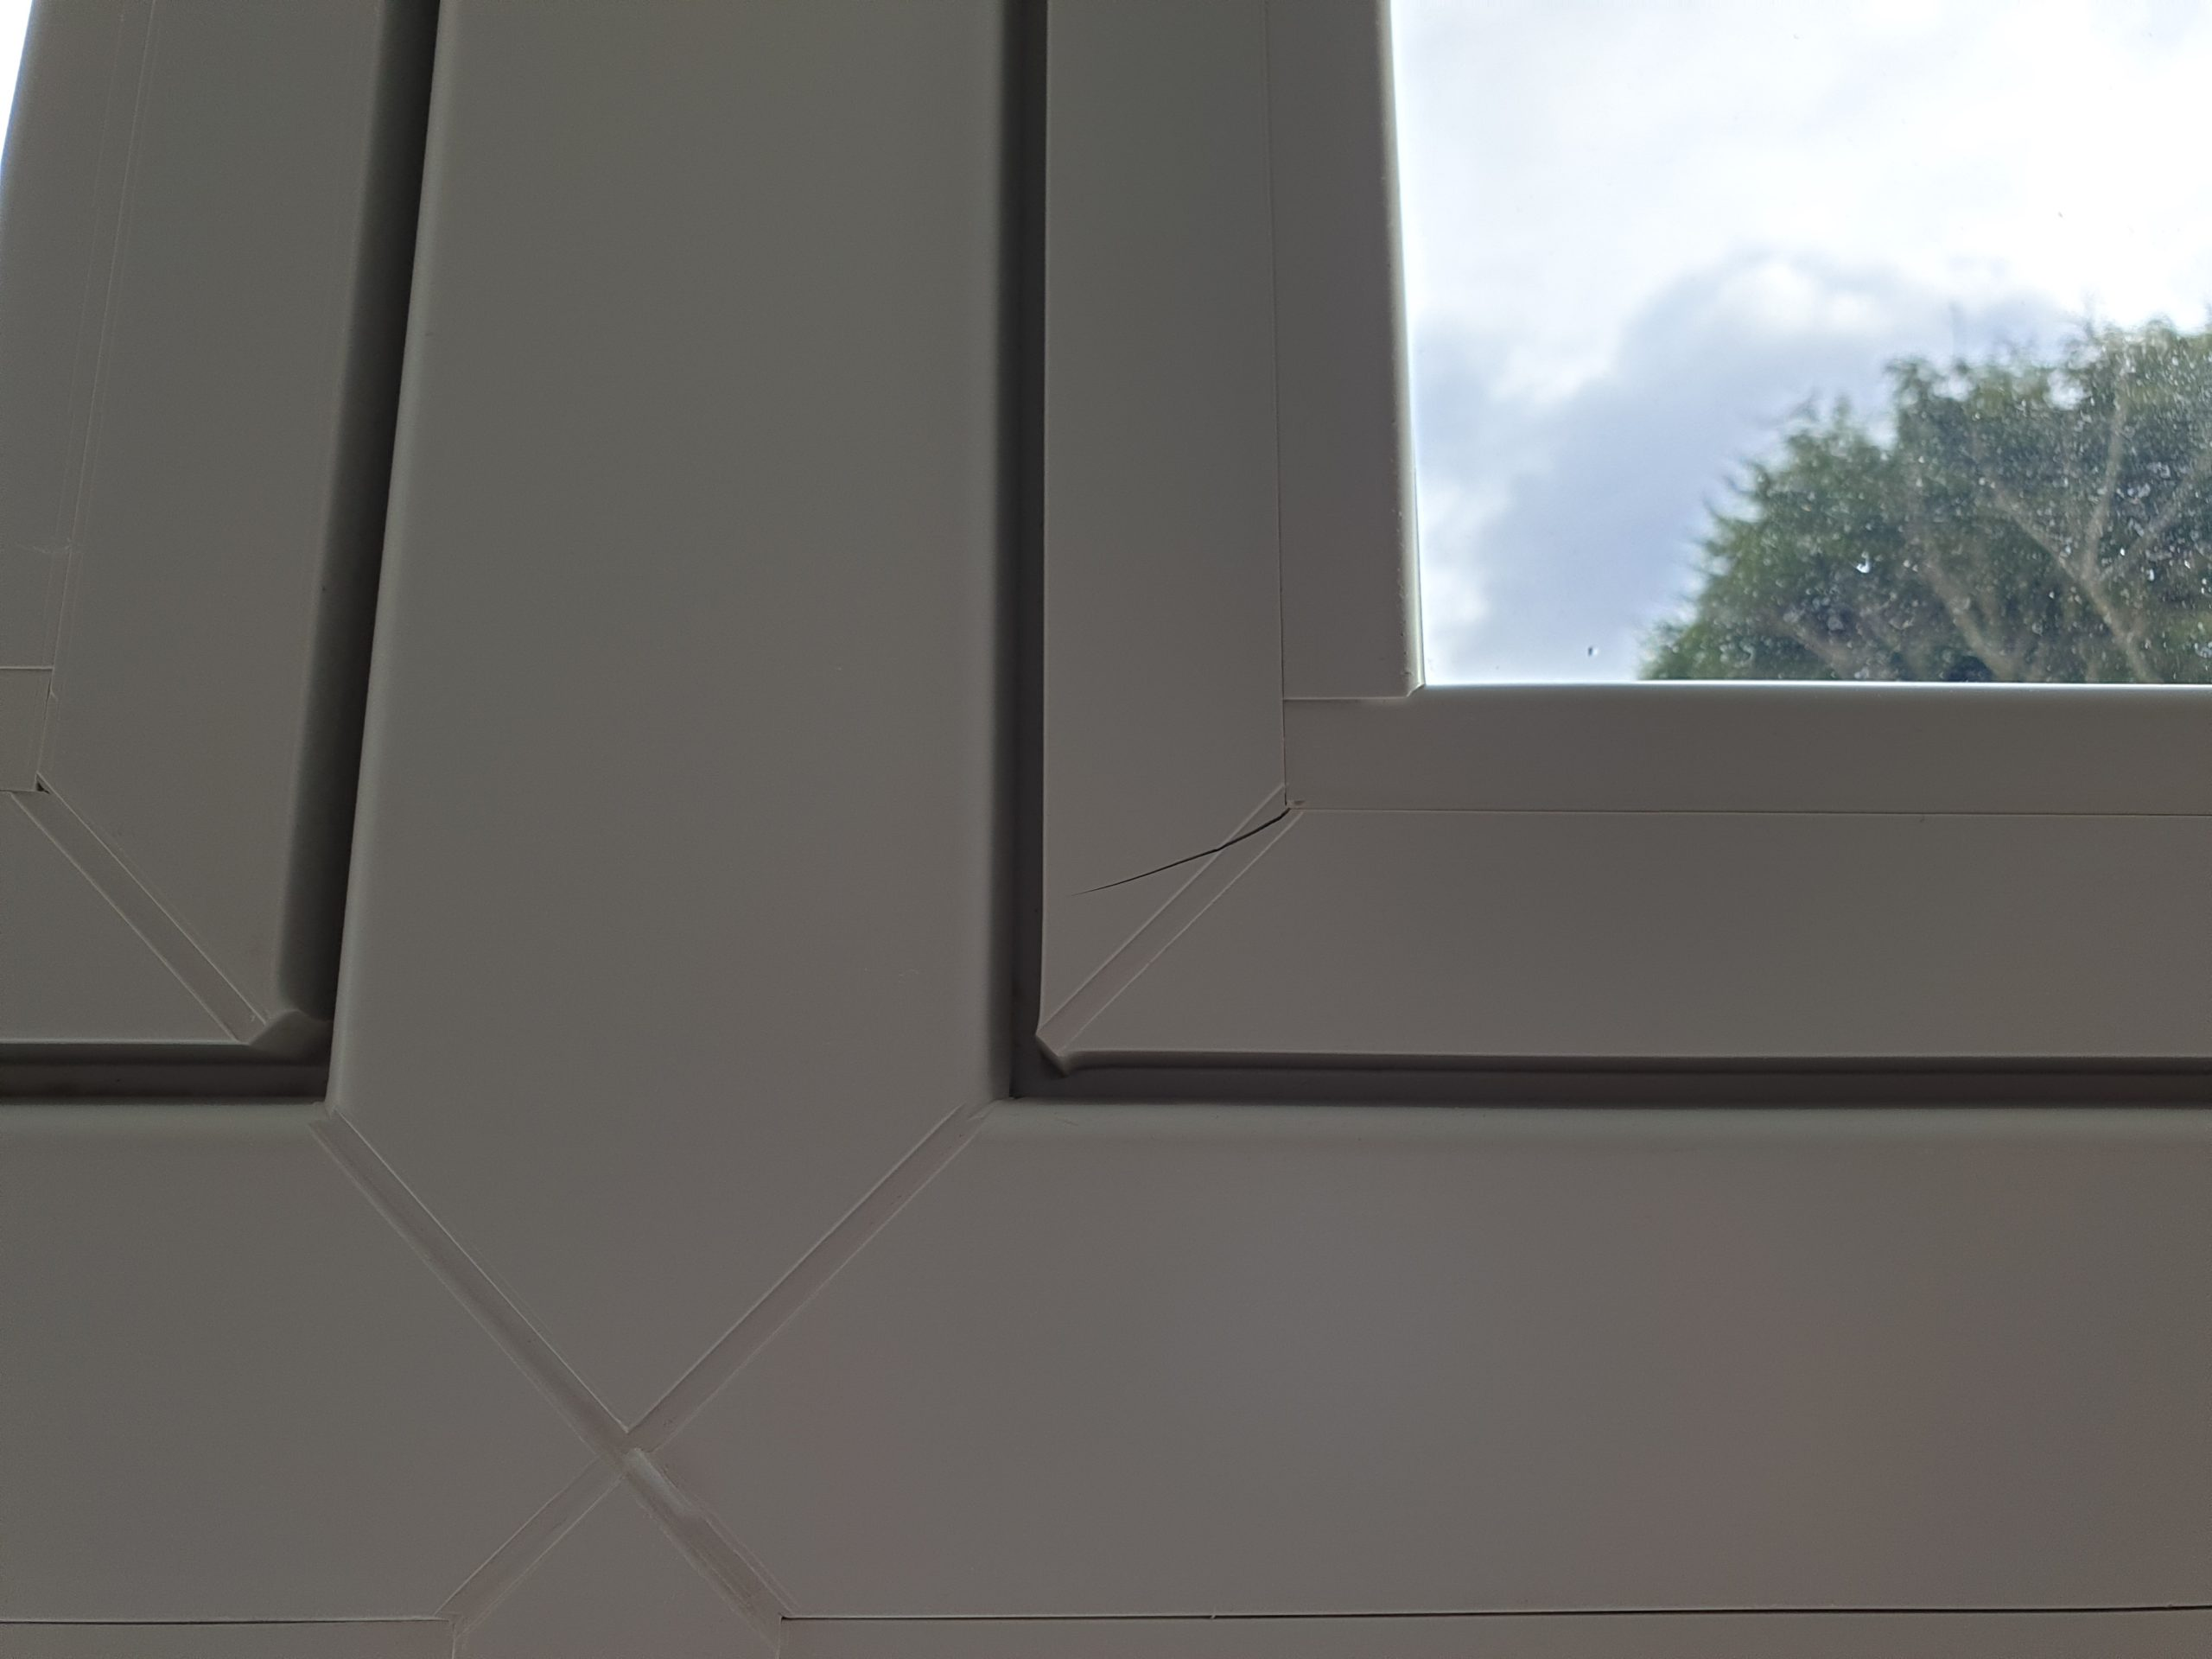 CRACKED UPVC PLASTIC WINDOW FRAME REPAIR BEFORE